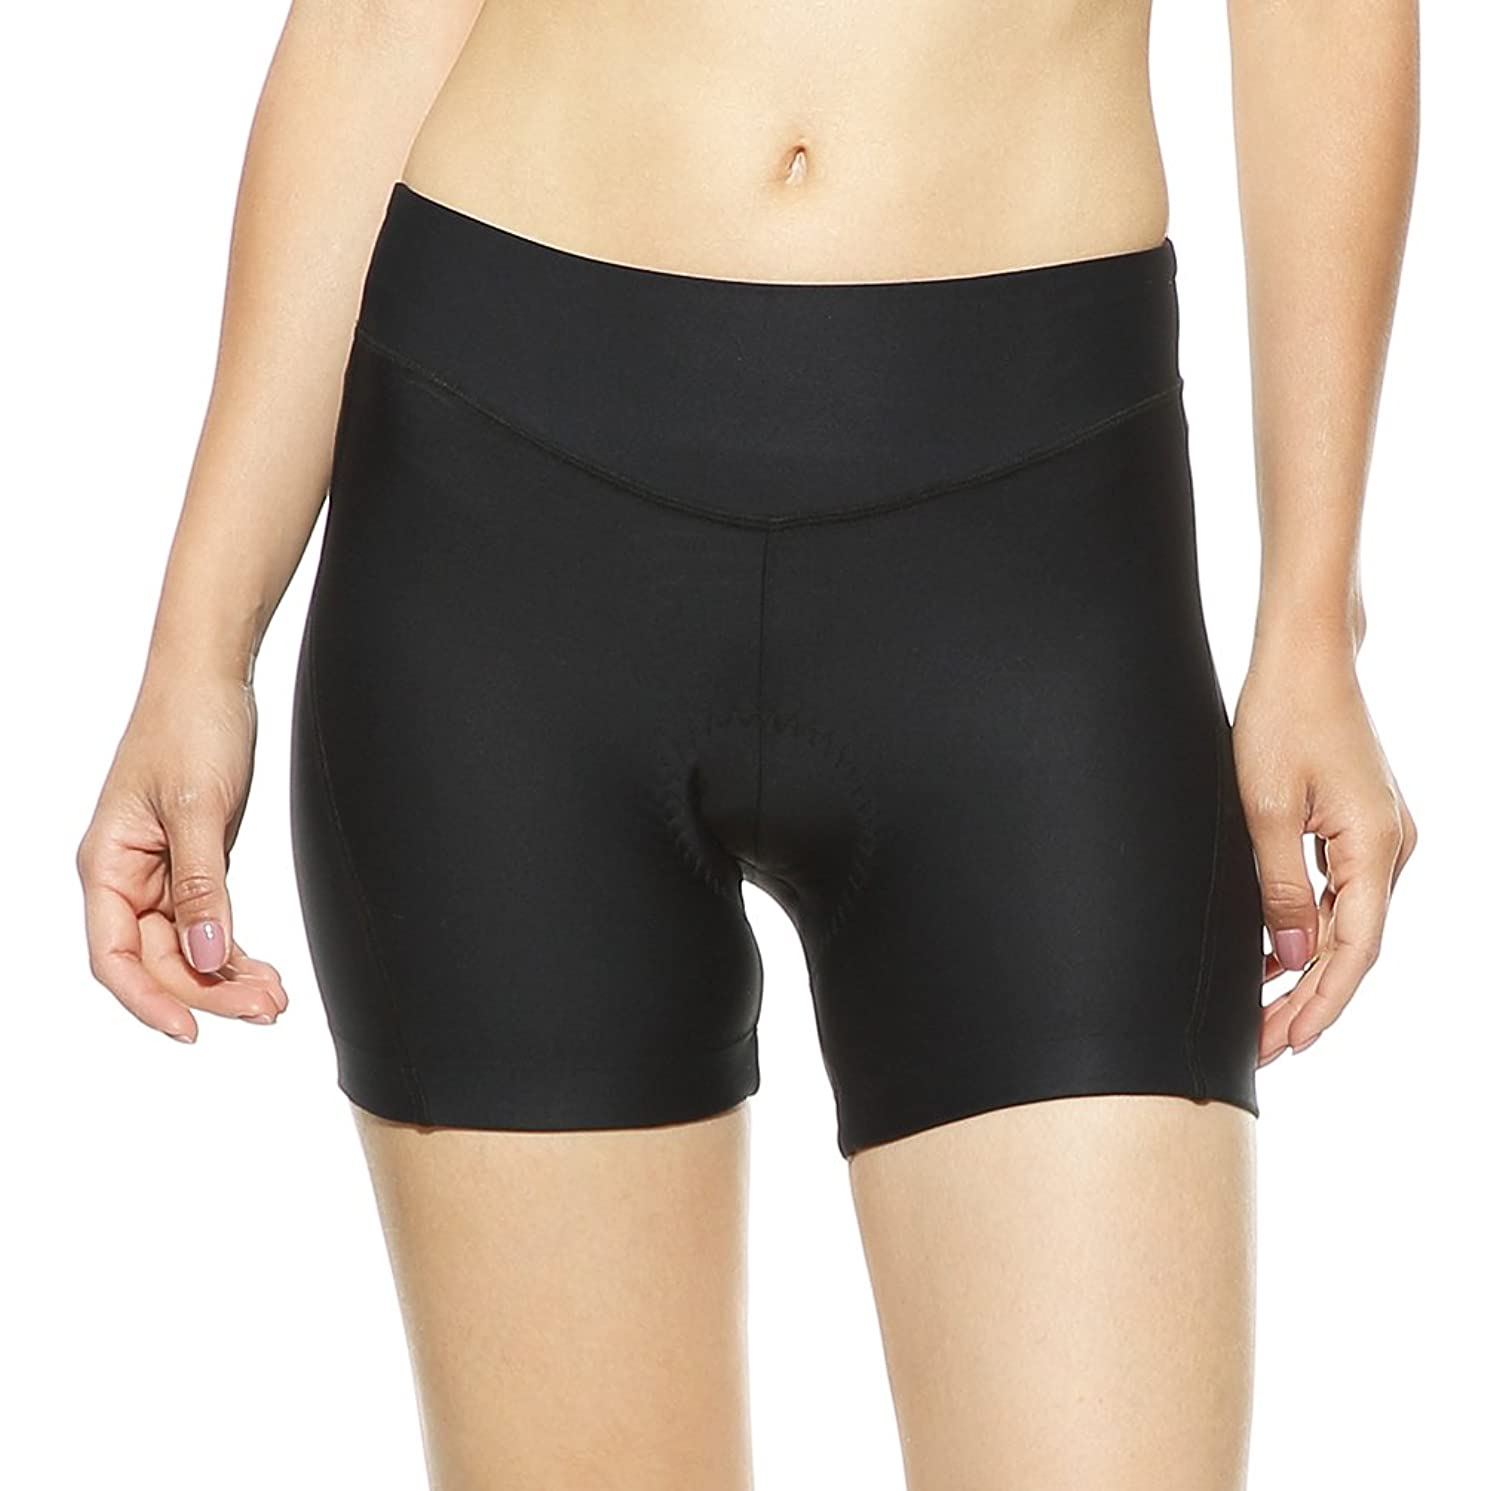 4ucycling Women's Cycling Spinning 3D Padded Brief Underwear Shorts Black